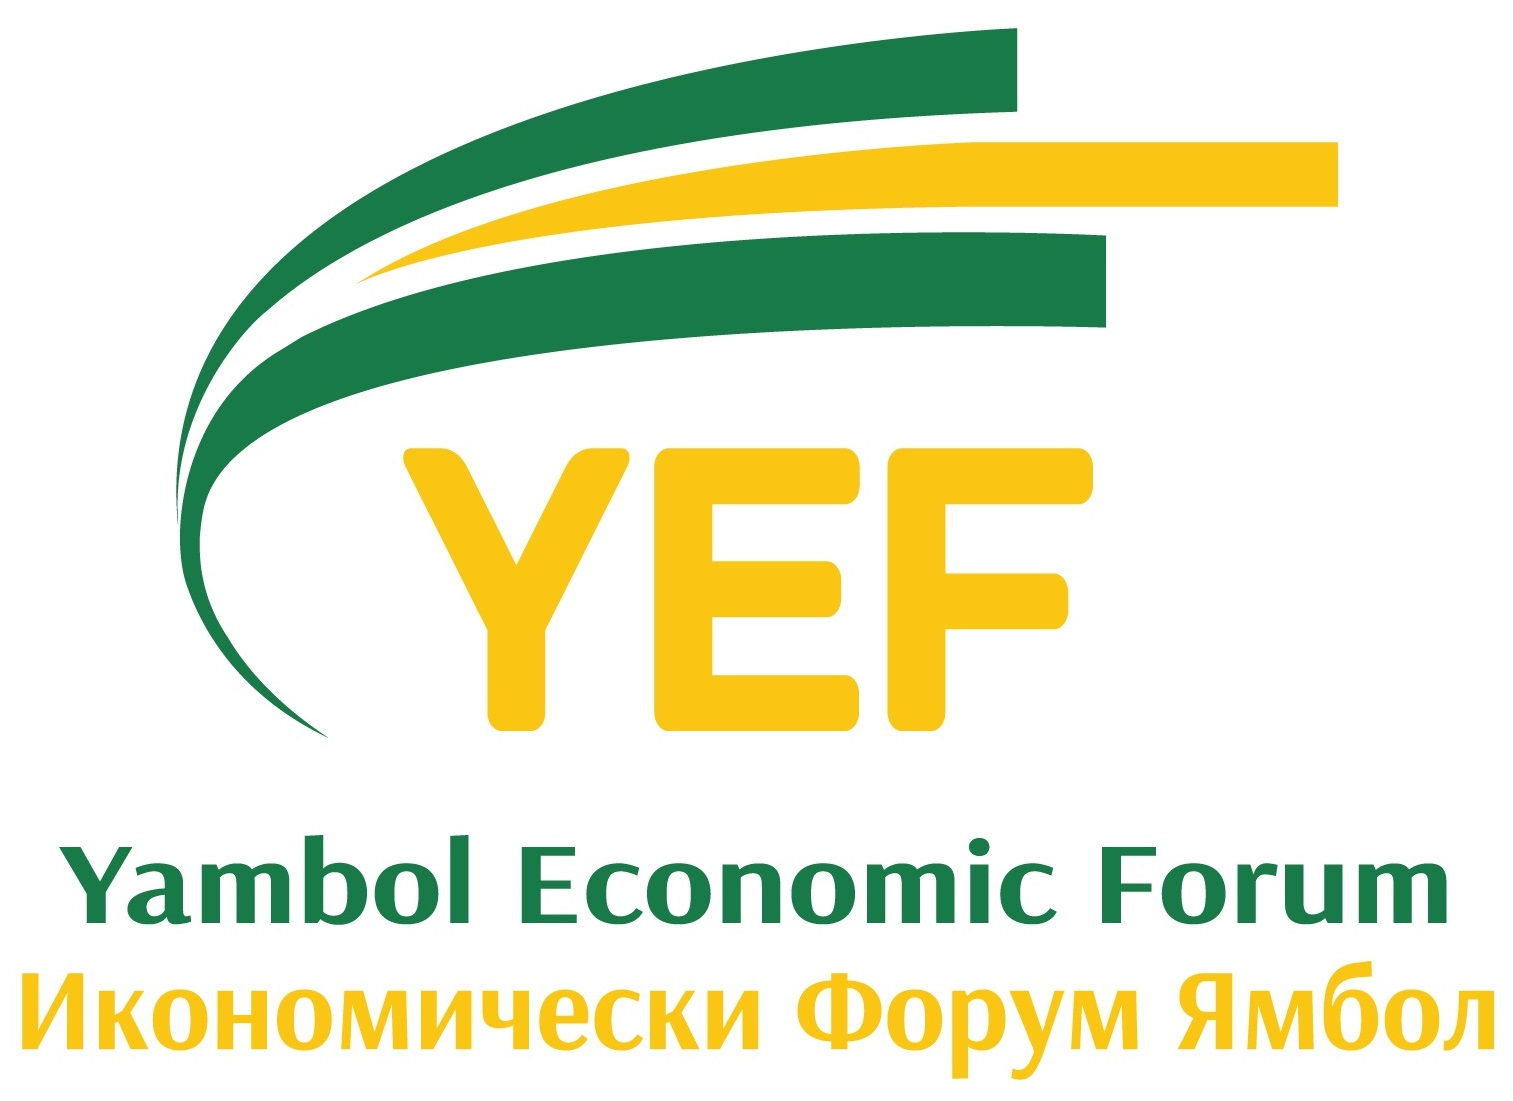 Yambol Economic Forum 2016